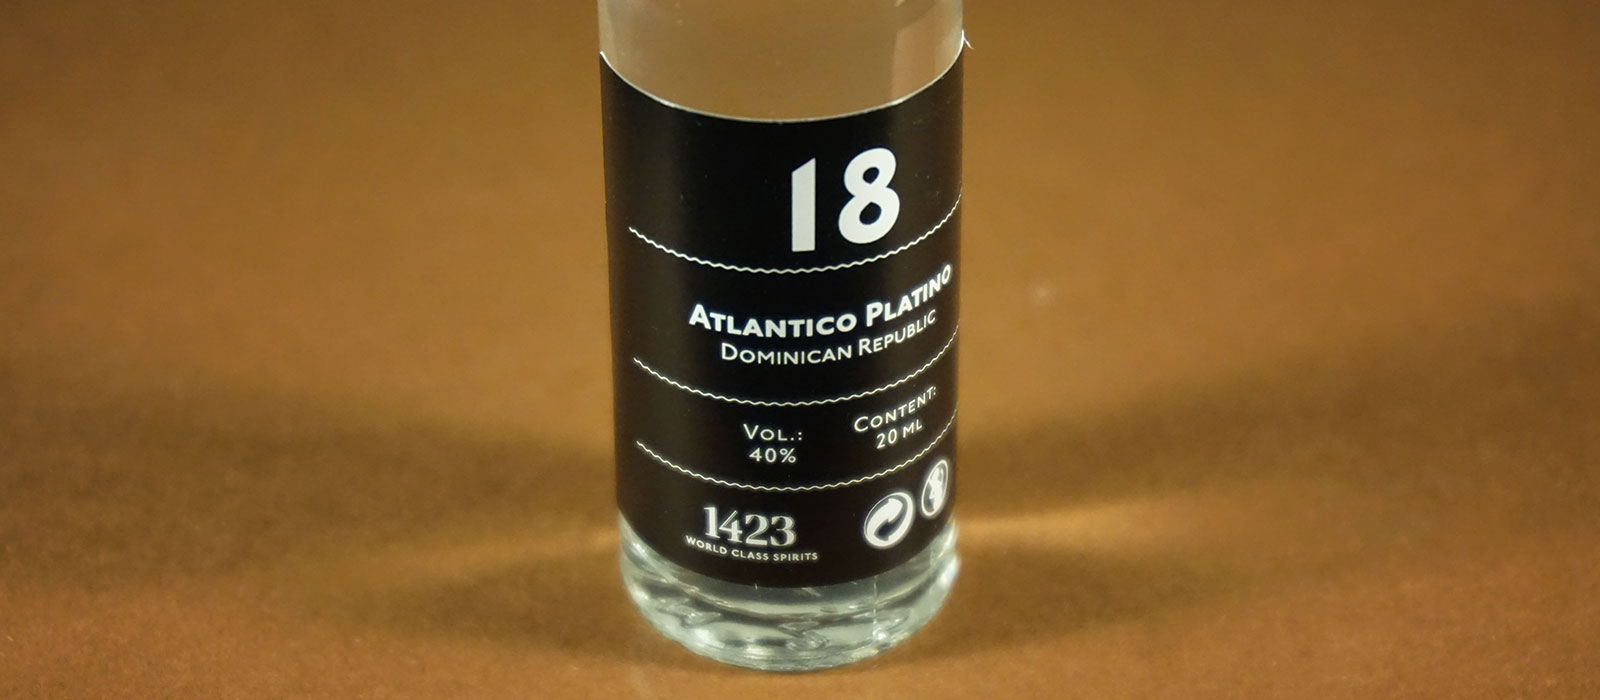 24 Days of Rum 2017: Dag 18 – Atlantico Platino